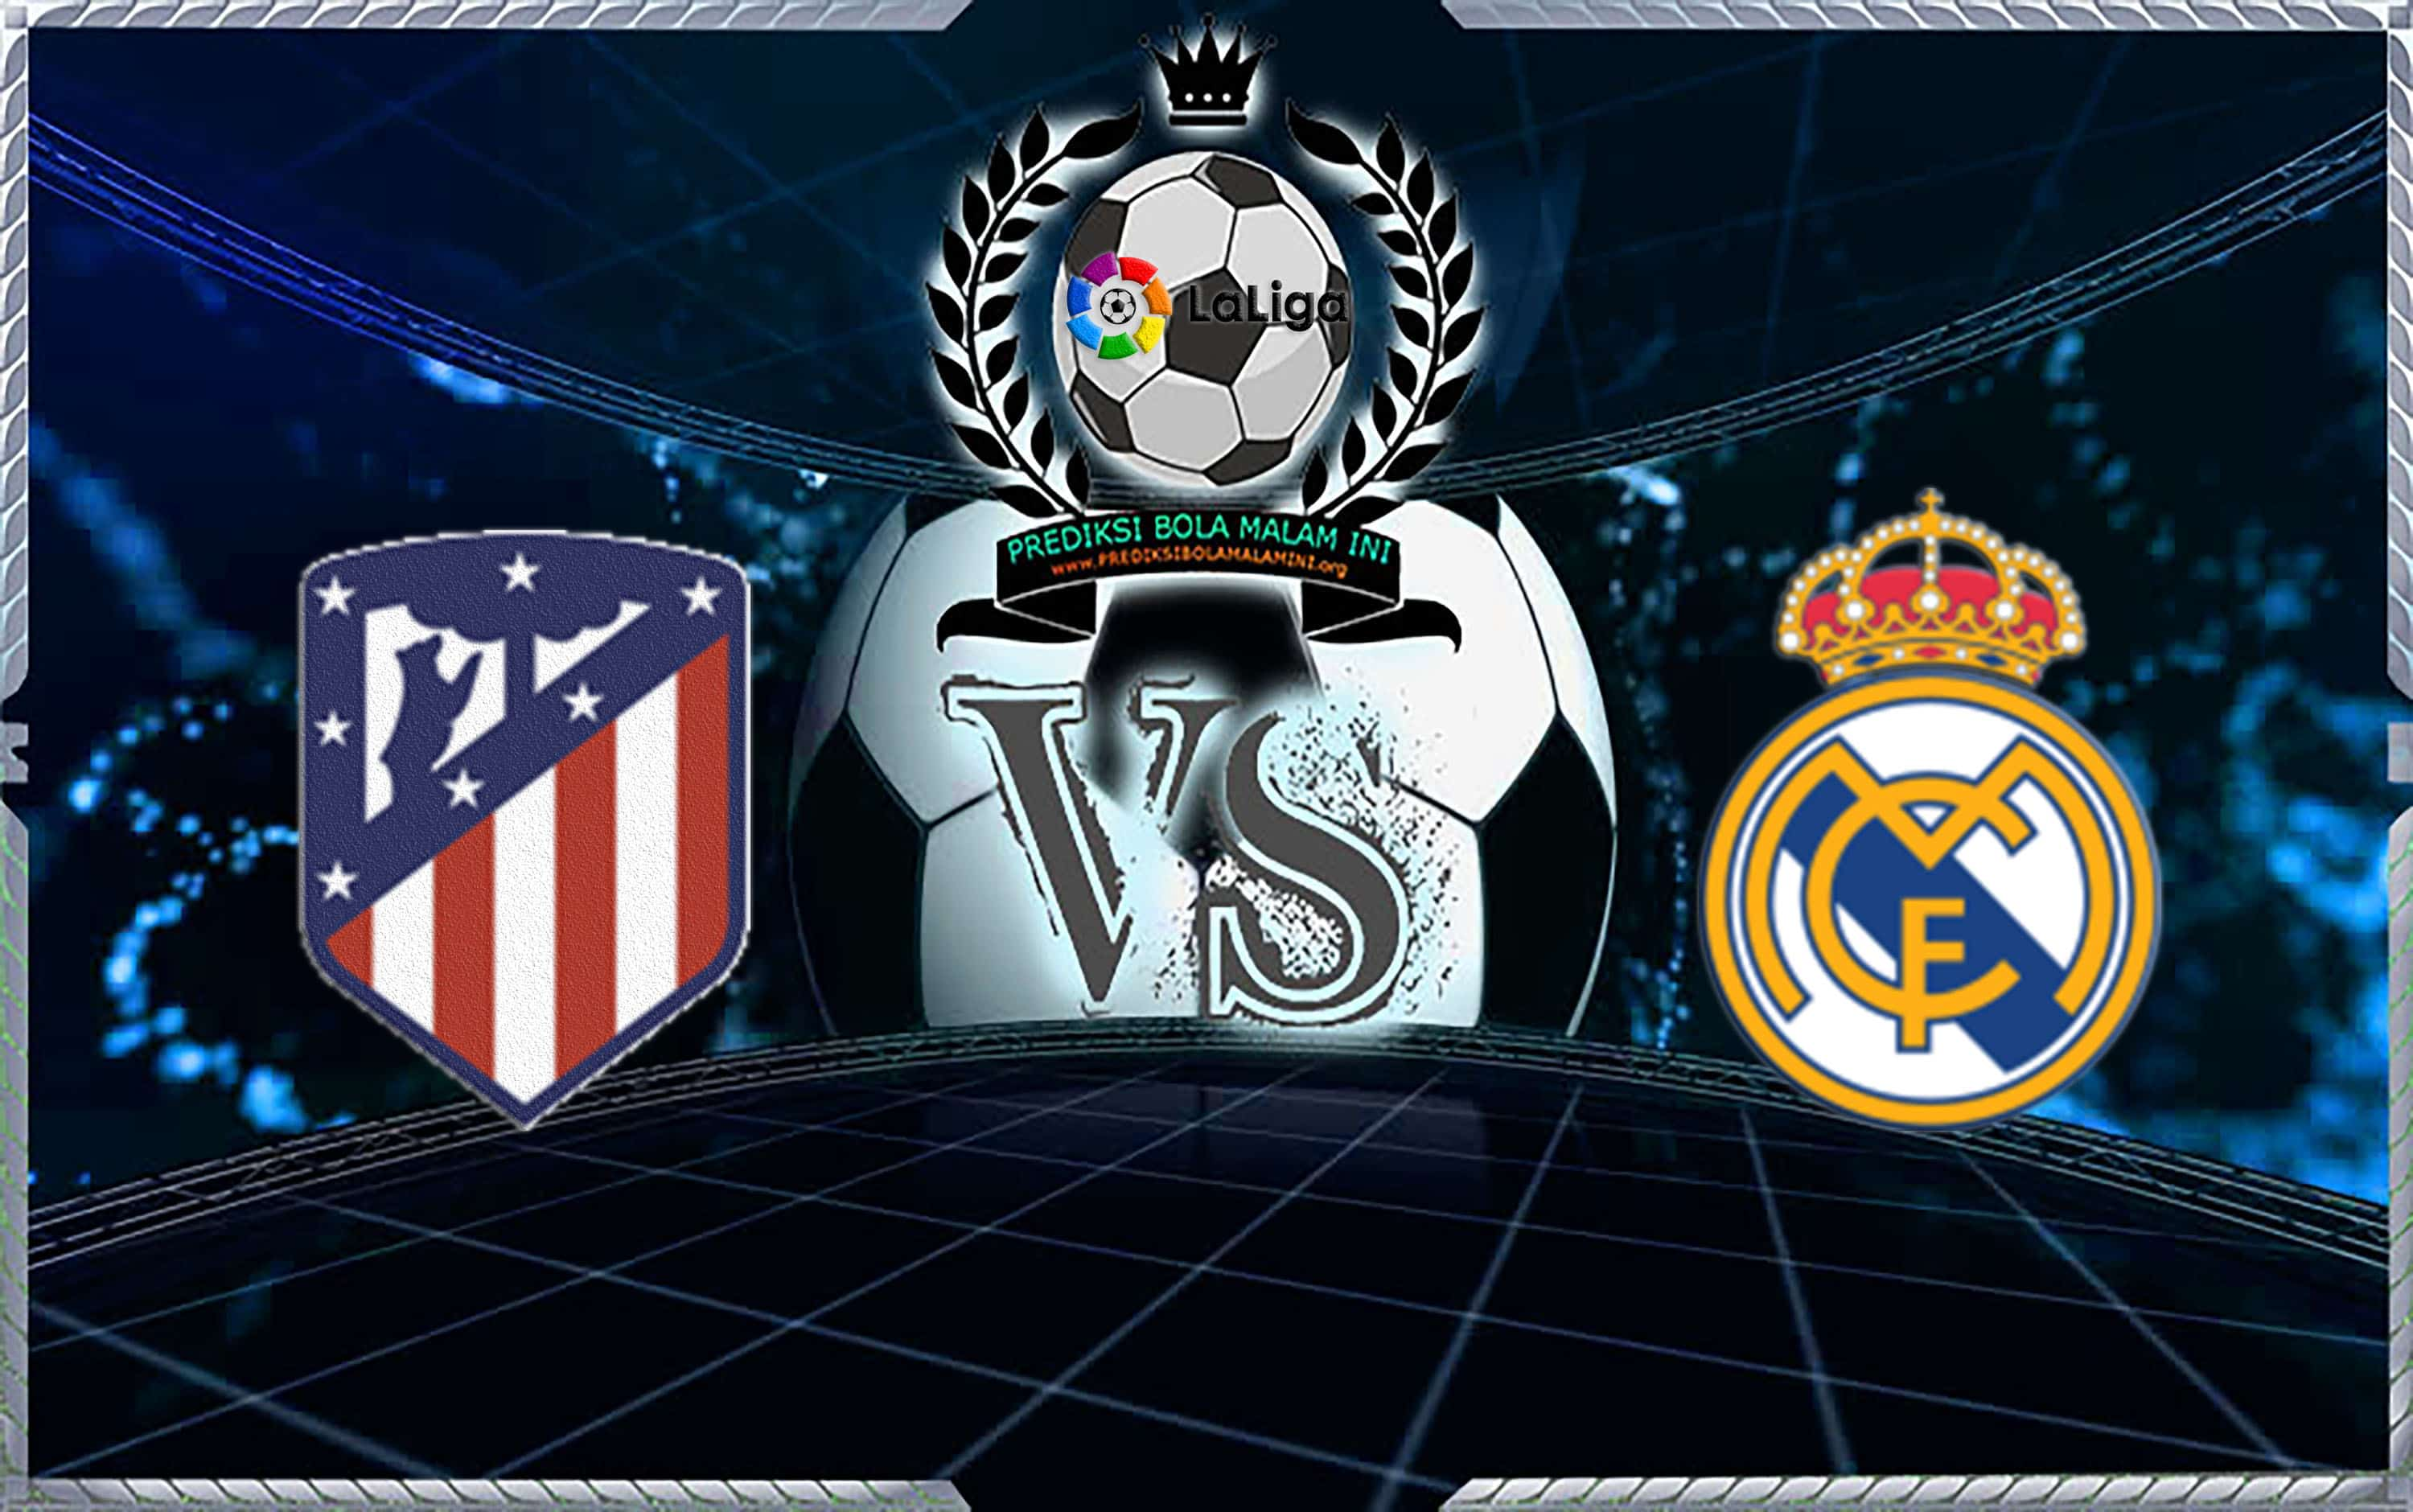 Prediksi Scor ATLÉTICO MADRID Vs REAL MADRID 9 Februari 2019